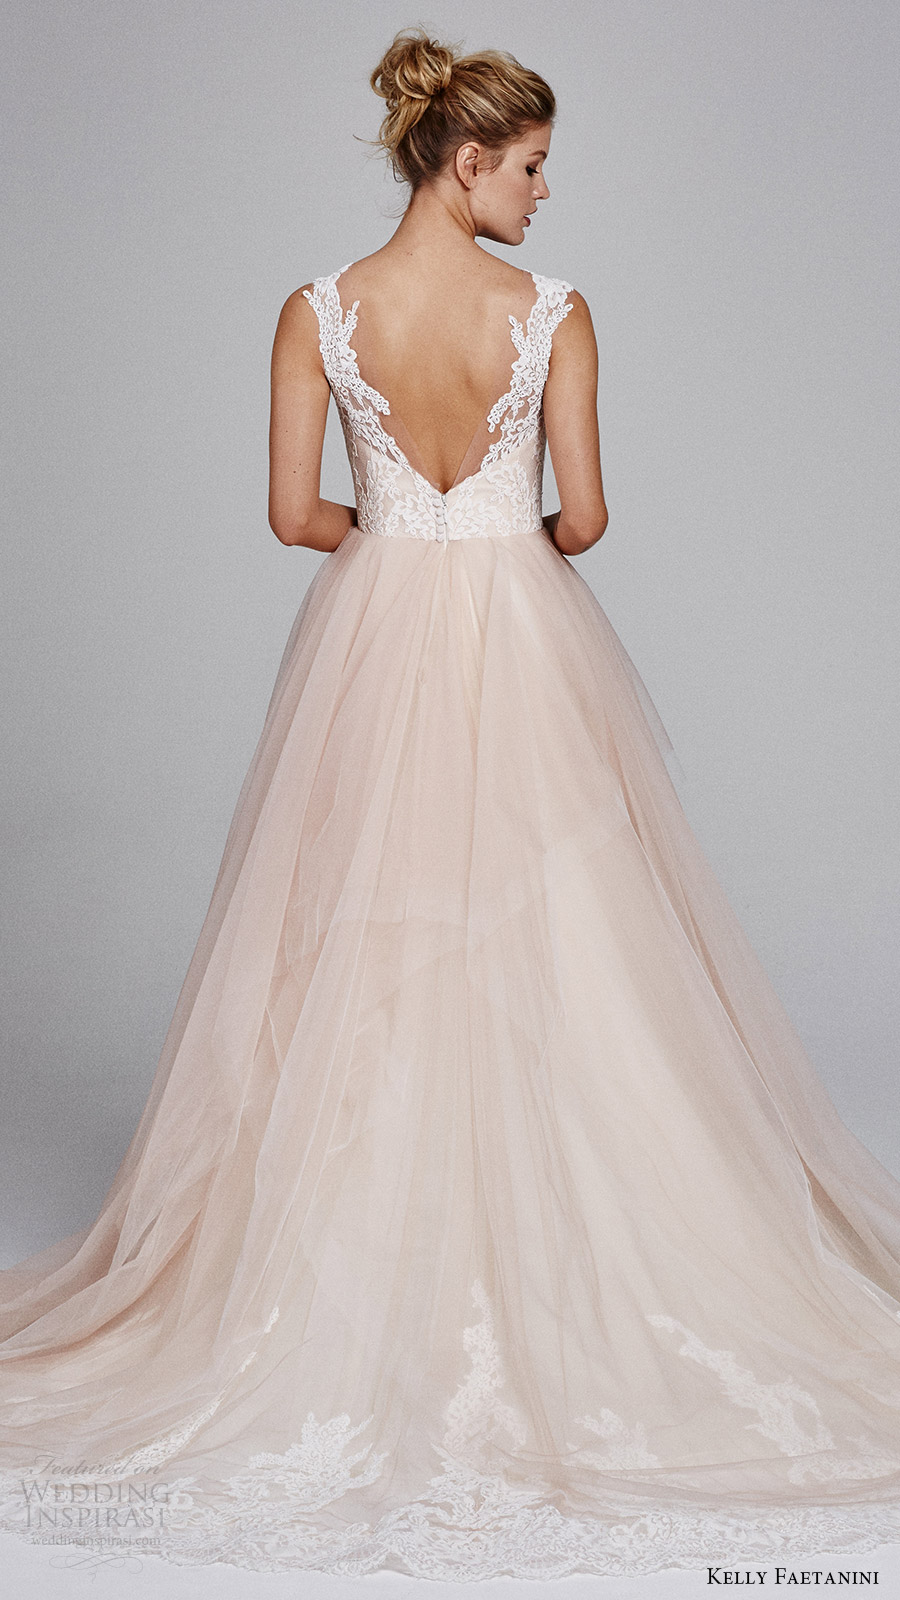 kelly faetanini fall 2017 sleeveless sweetheart lace bodice aline wedding dress (azalea) bv vback blush skirt lace hem train